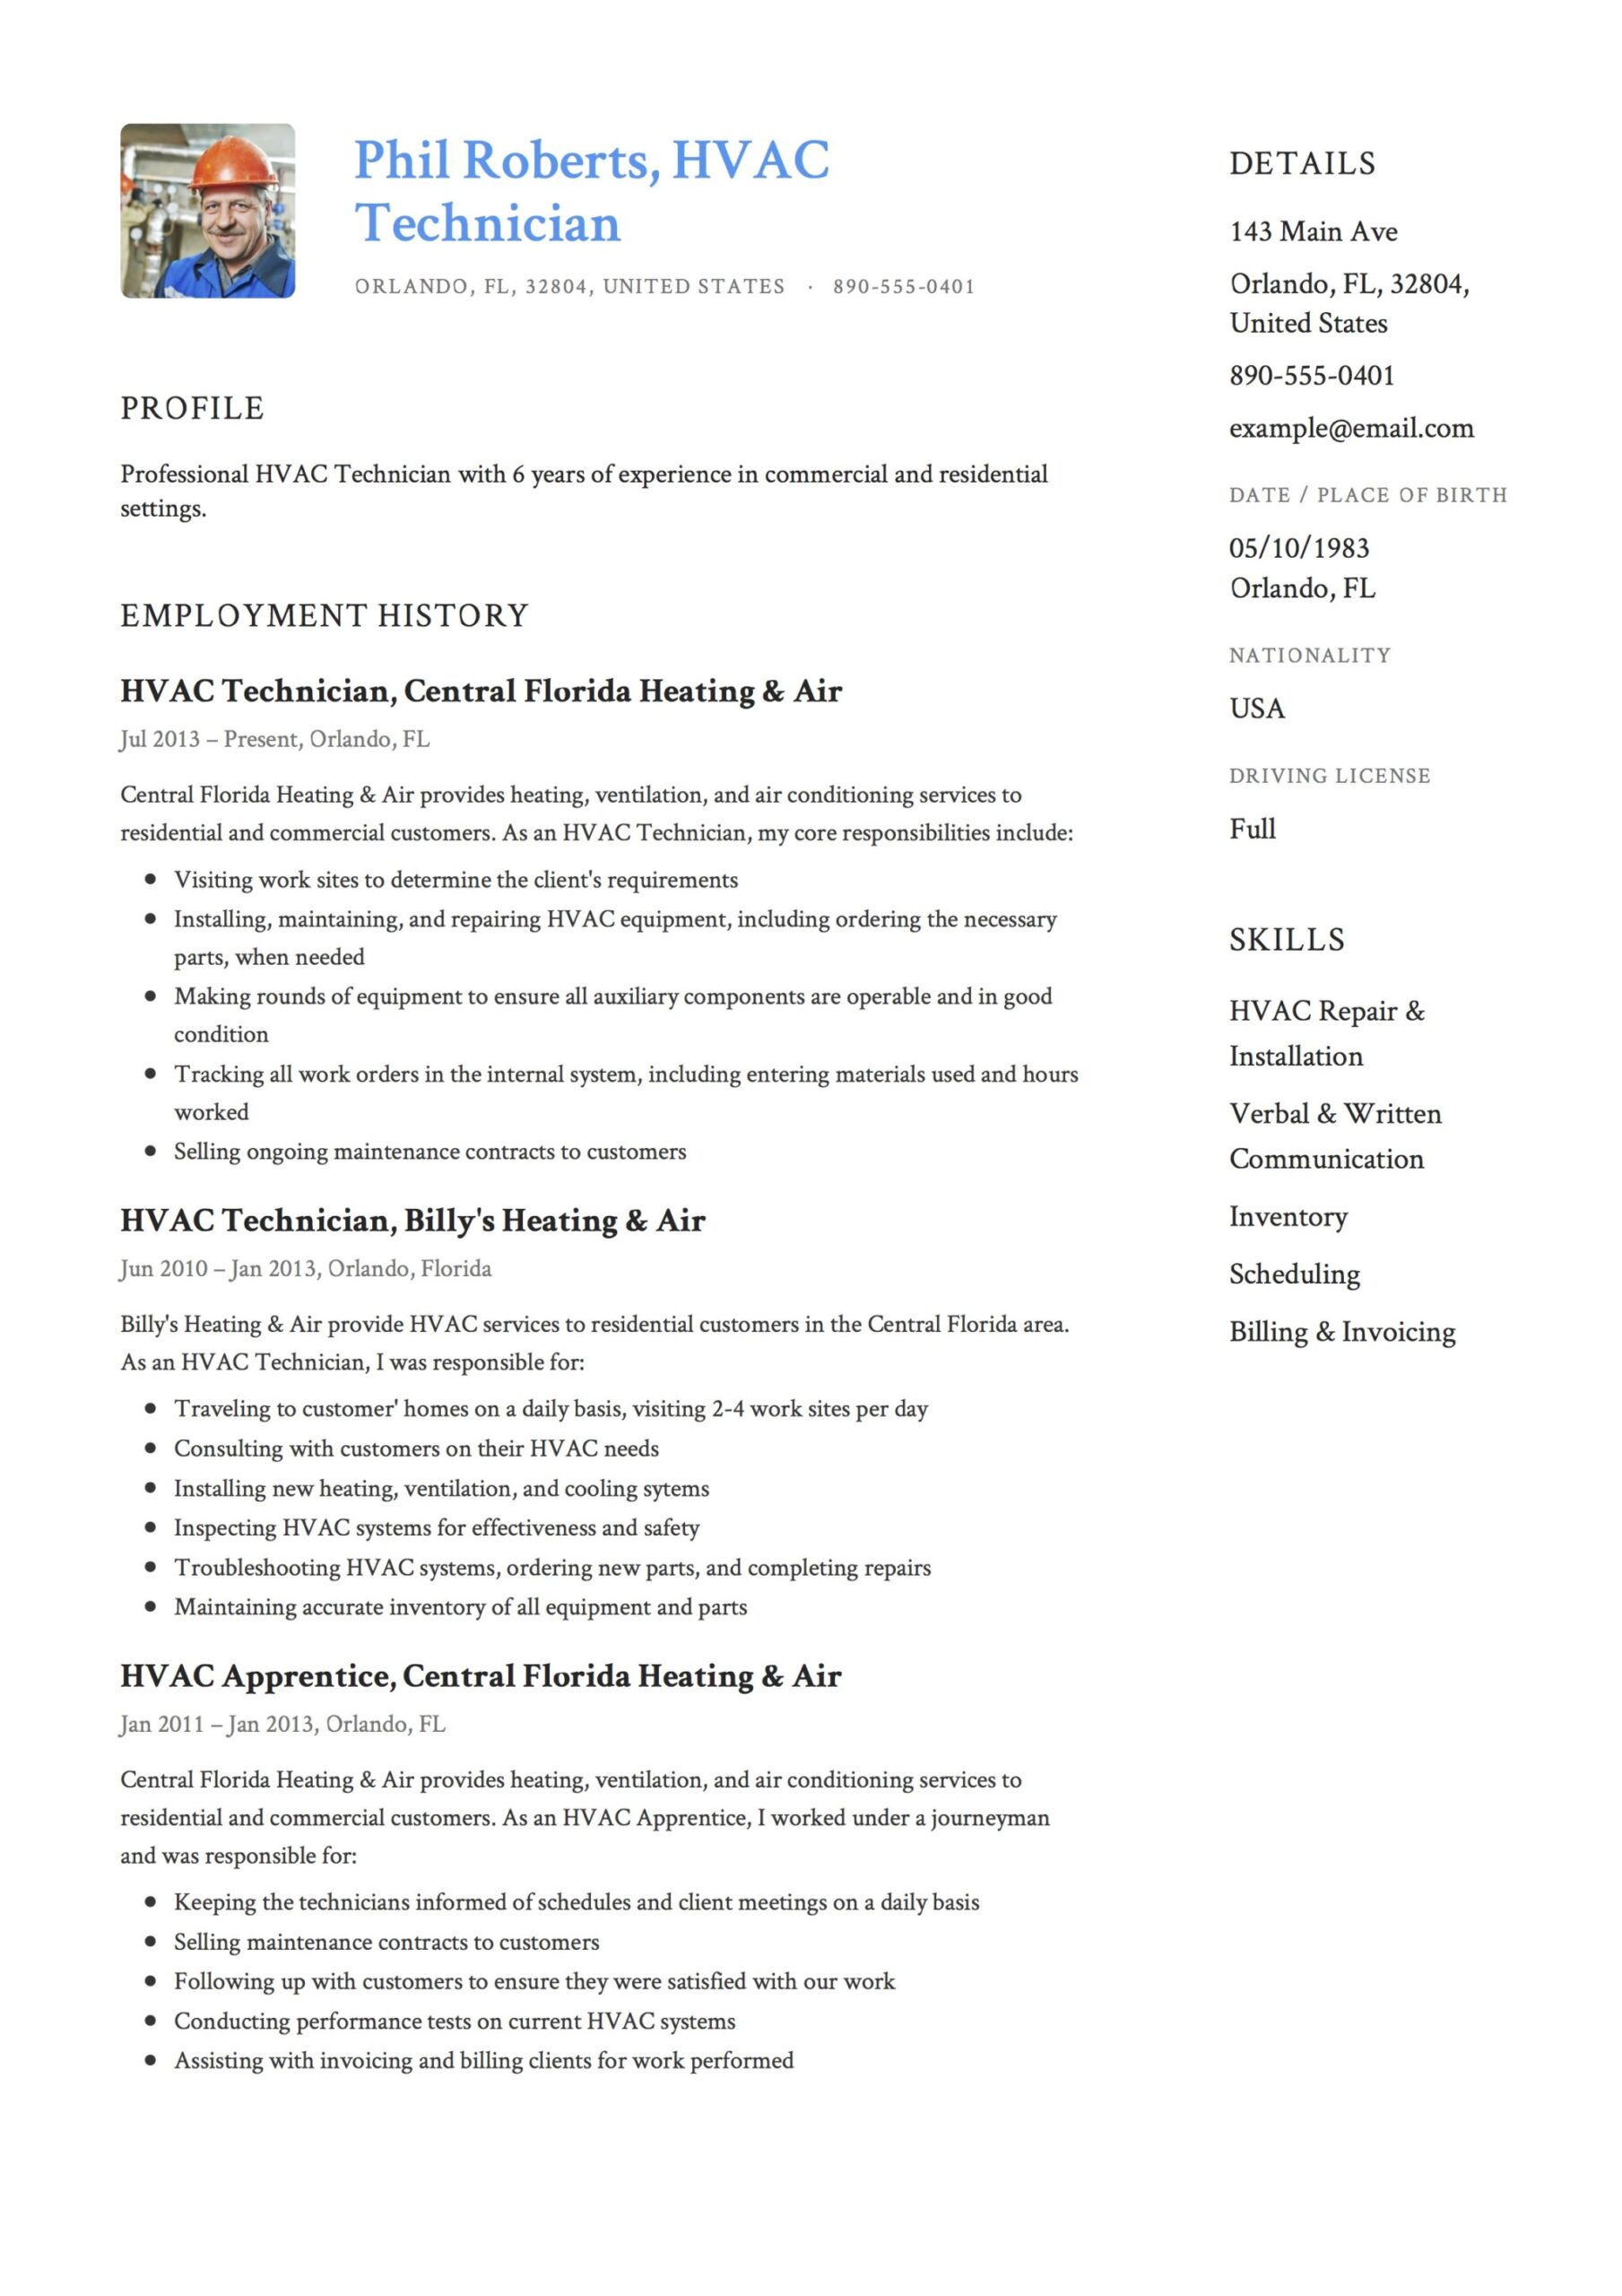 resume templates pdf word free downloads and guides professional job template hvac Resume Professional Job Resume Template